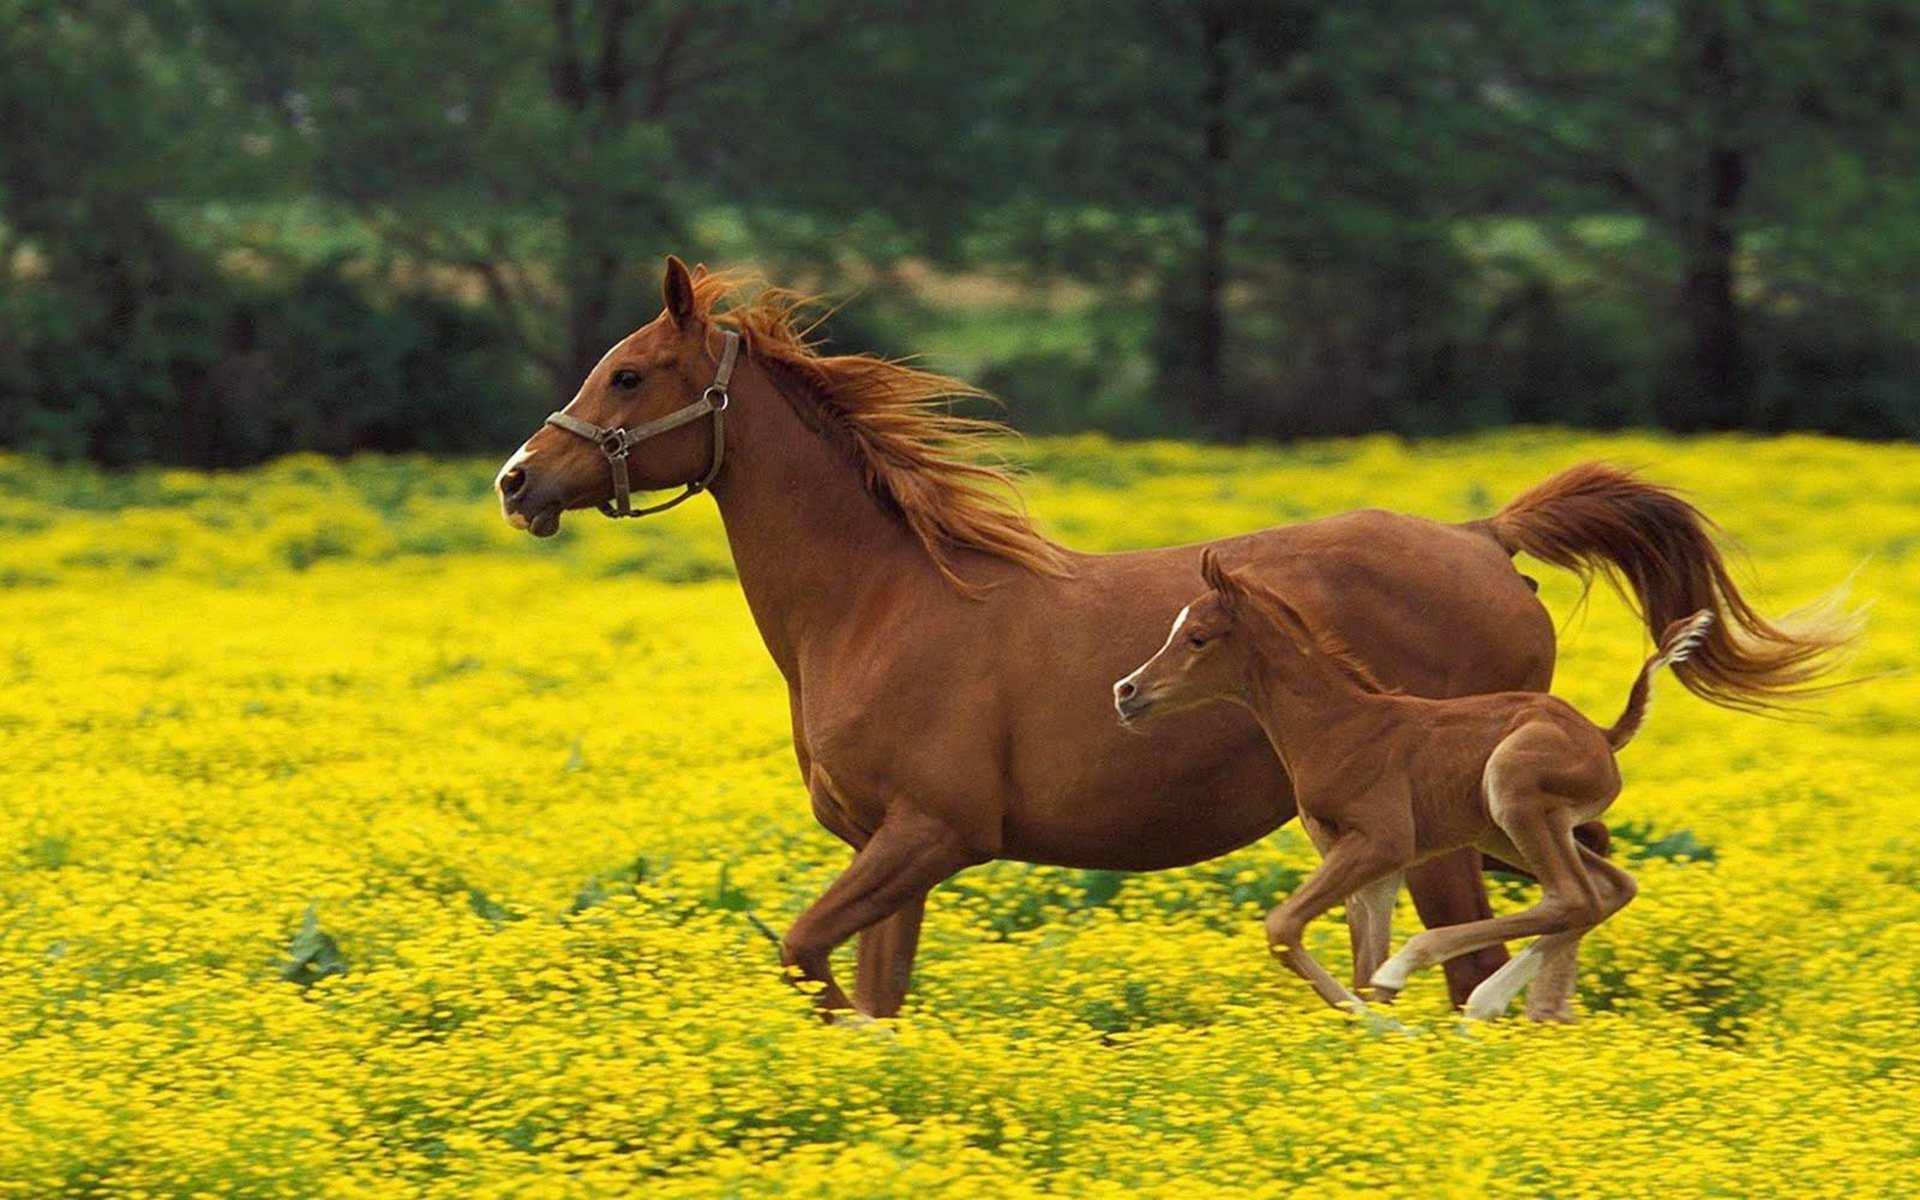 Horse Wallpaper Wid Flowers Mother Horse And Baby Horse 3291737 Hd Wallpaper Backgrounds Download